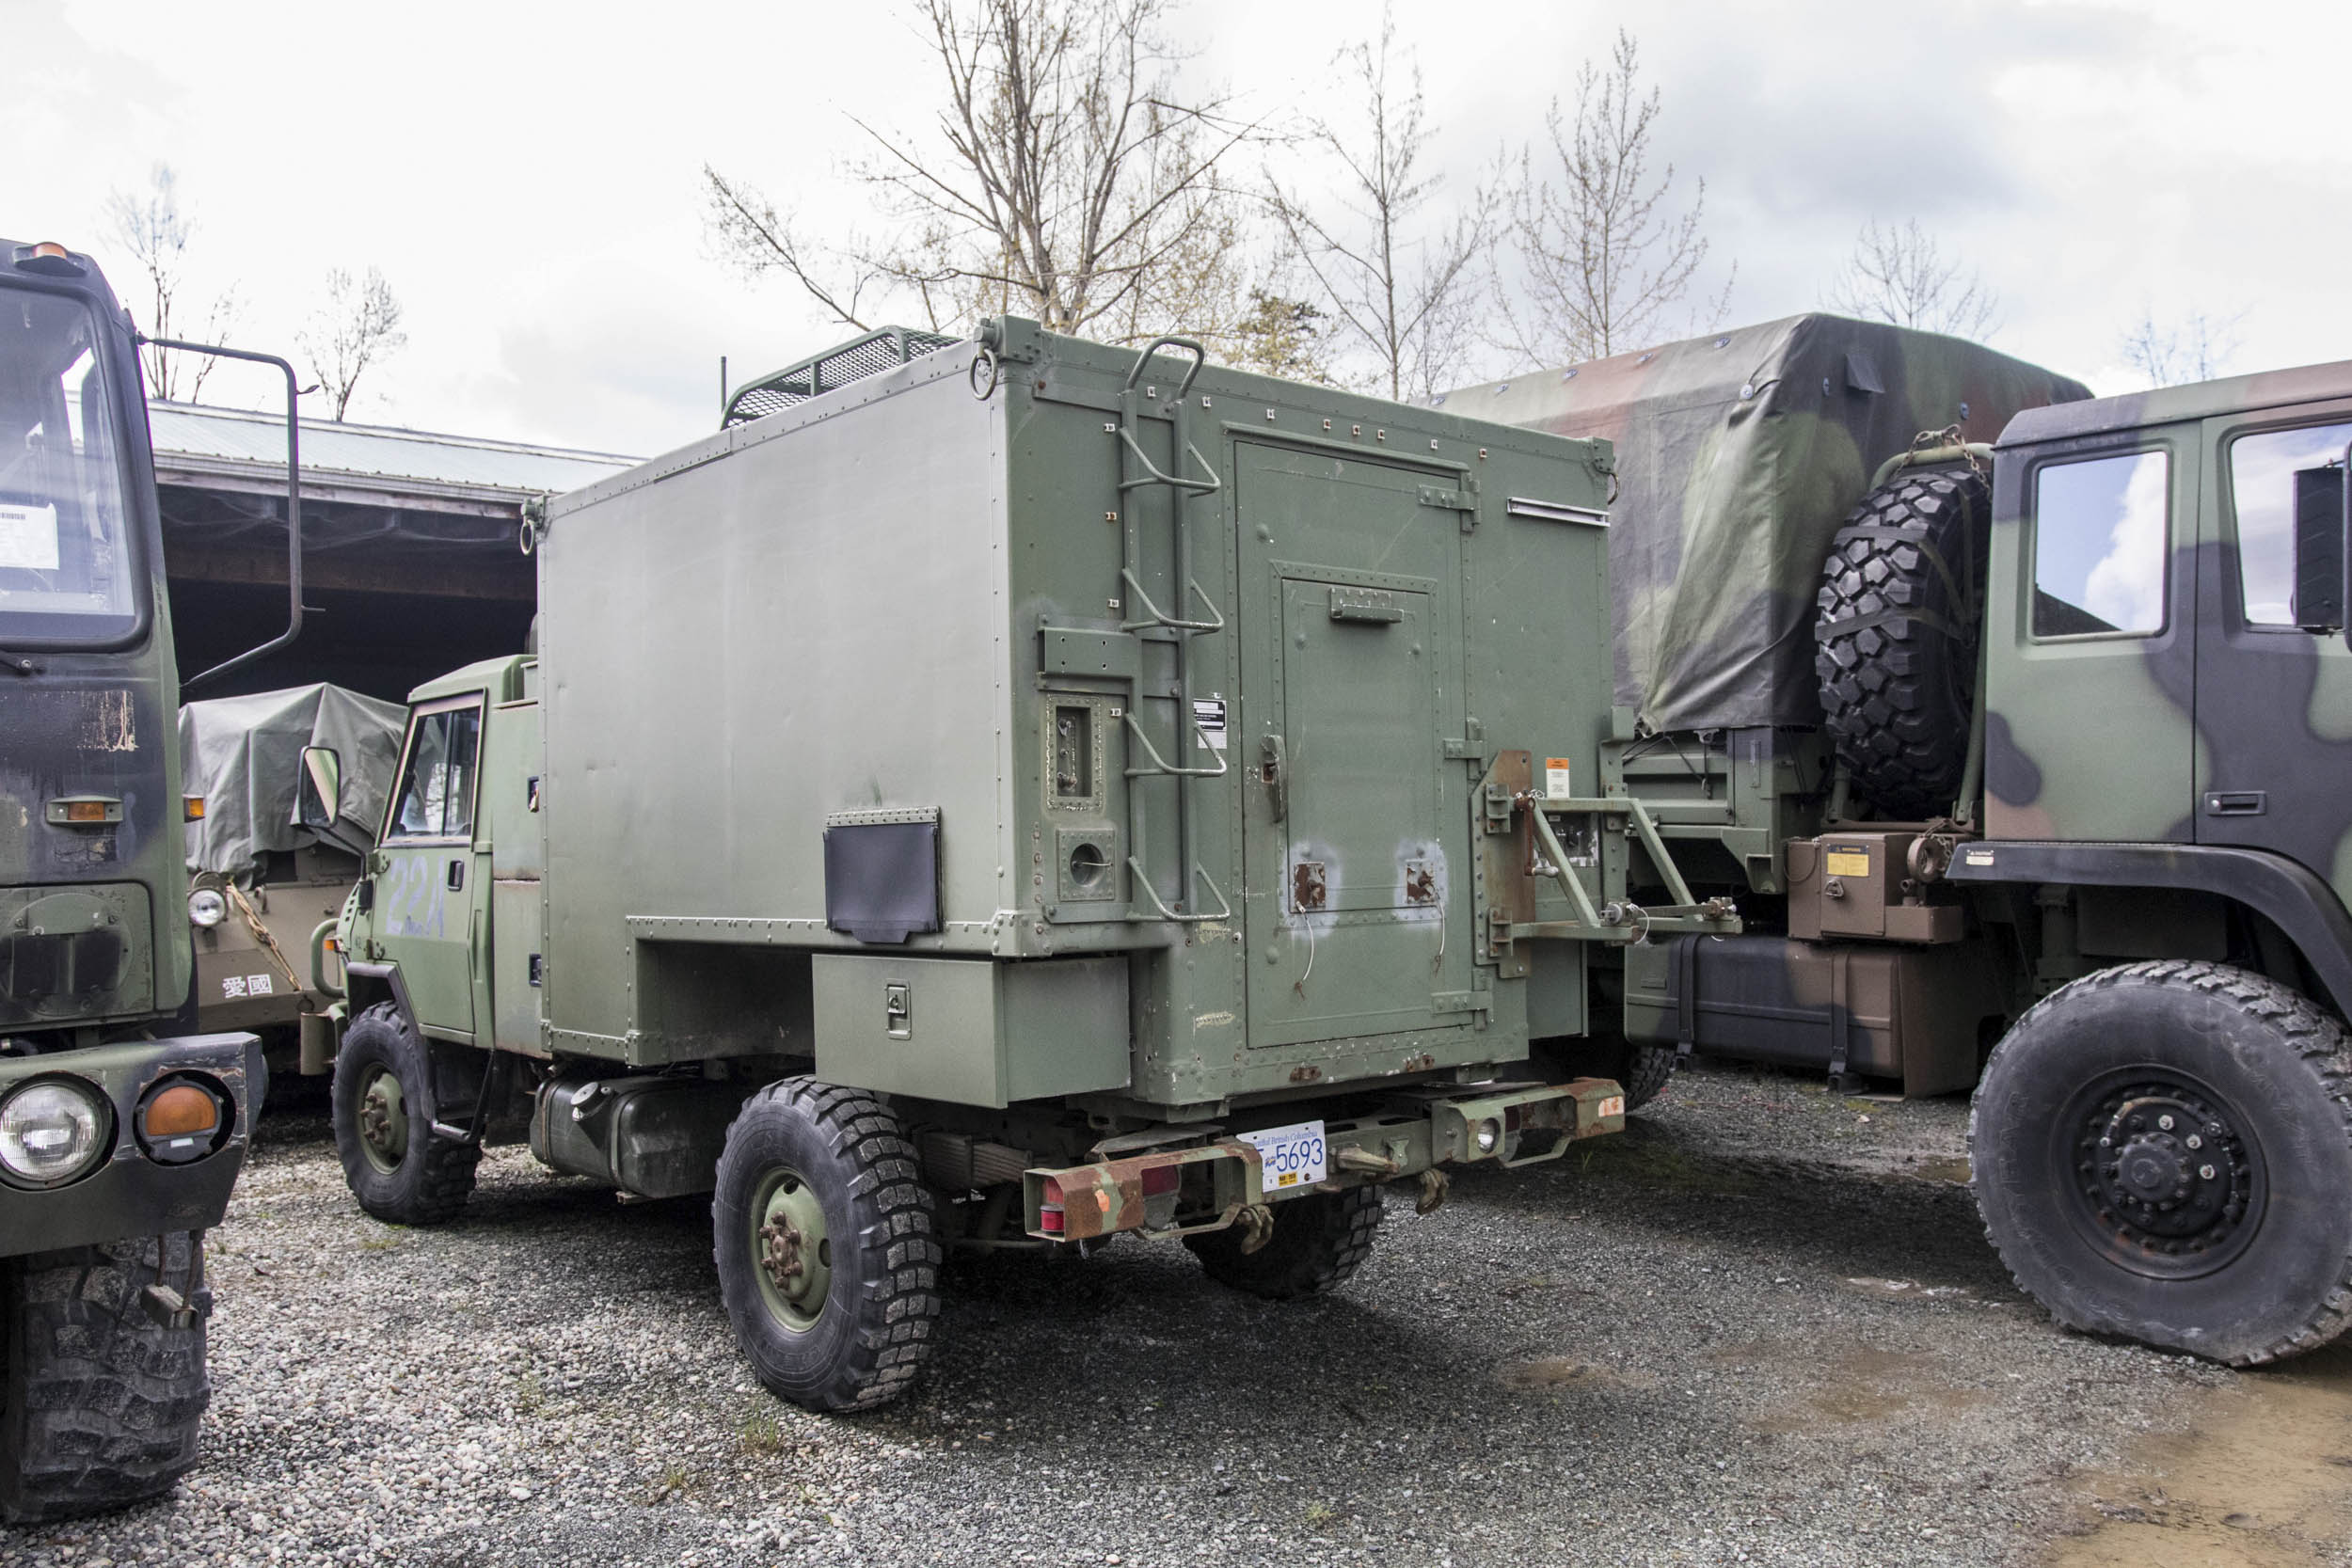 All decommissioned U.S. military vehicles must go to auction bearing decals showing how much they cost the American taxpayer. This mobile command came with a six-figure bill.